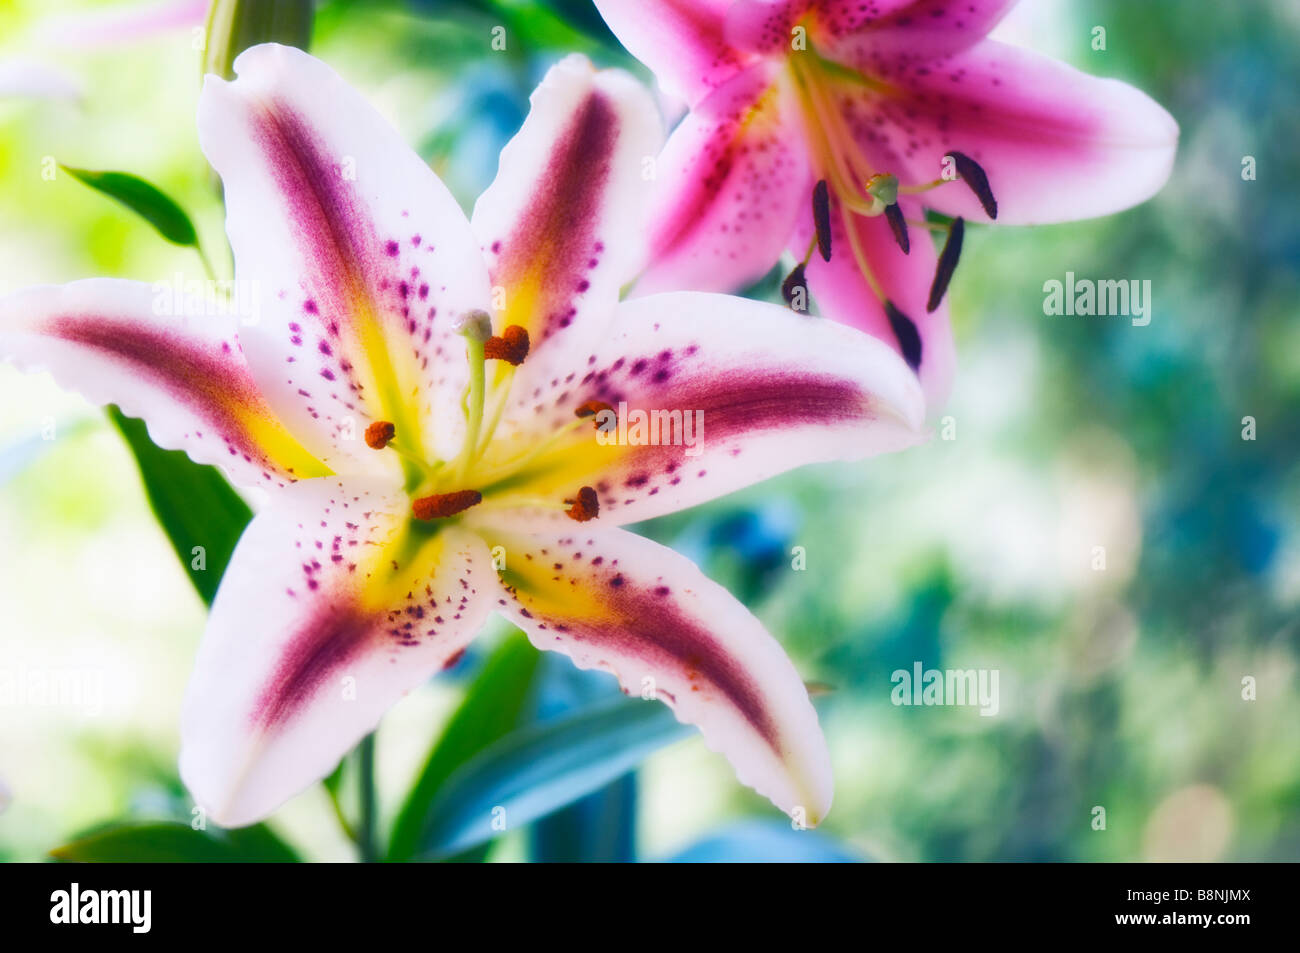 Different oriental lily flowers in bloom in summer garden stock different oriental lily flowers in bloom in summer garden izmirmasajfo Image collections